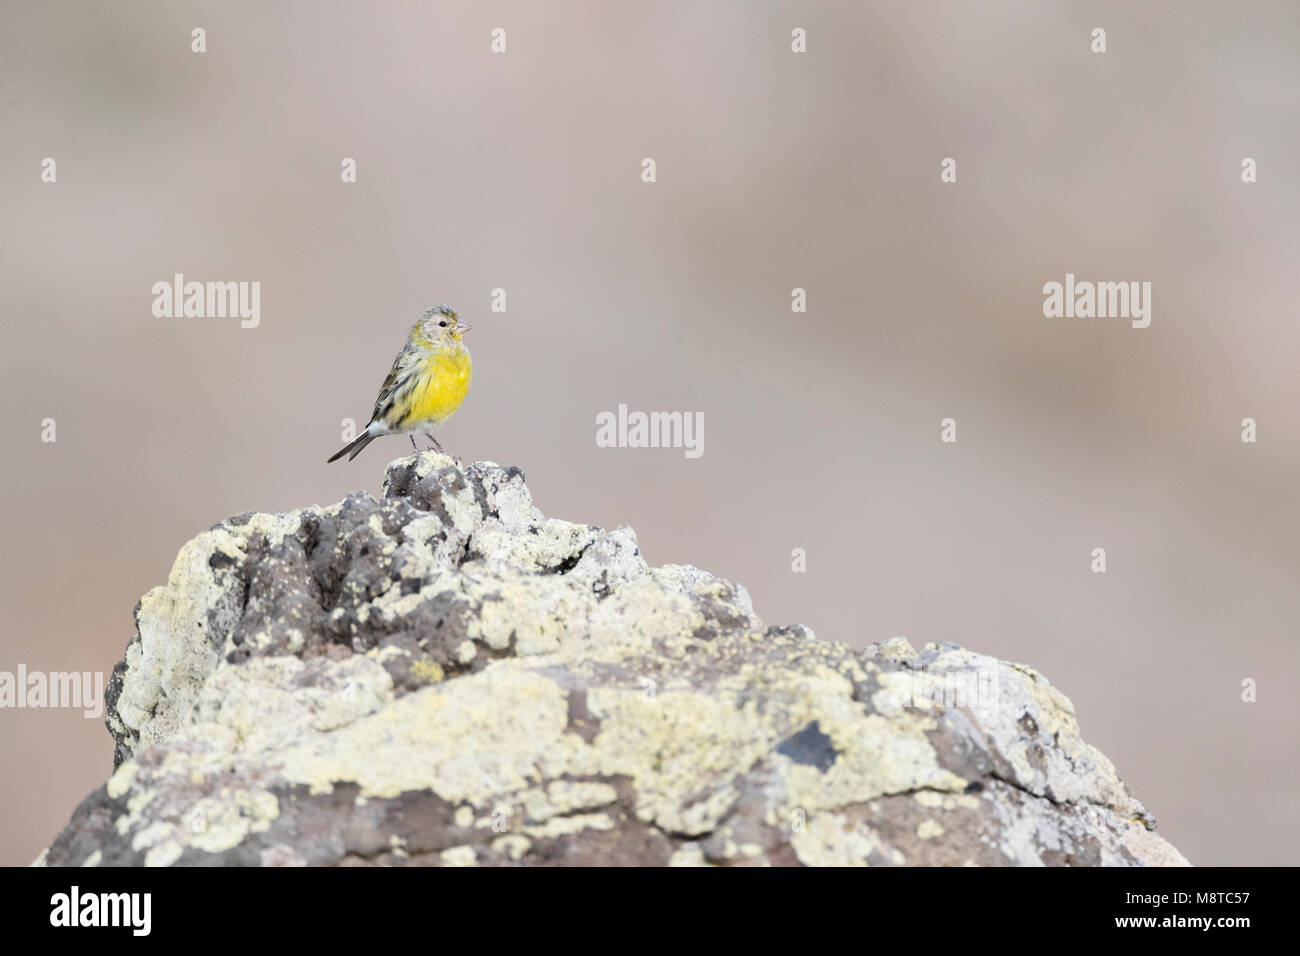 Altantic Canary on Madeira - Stock Image